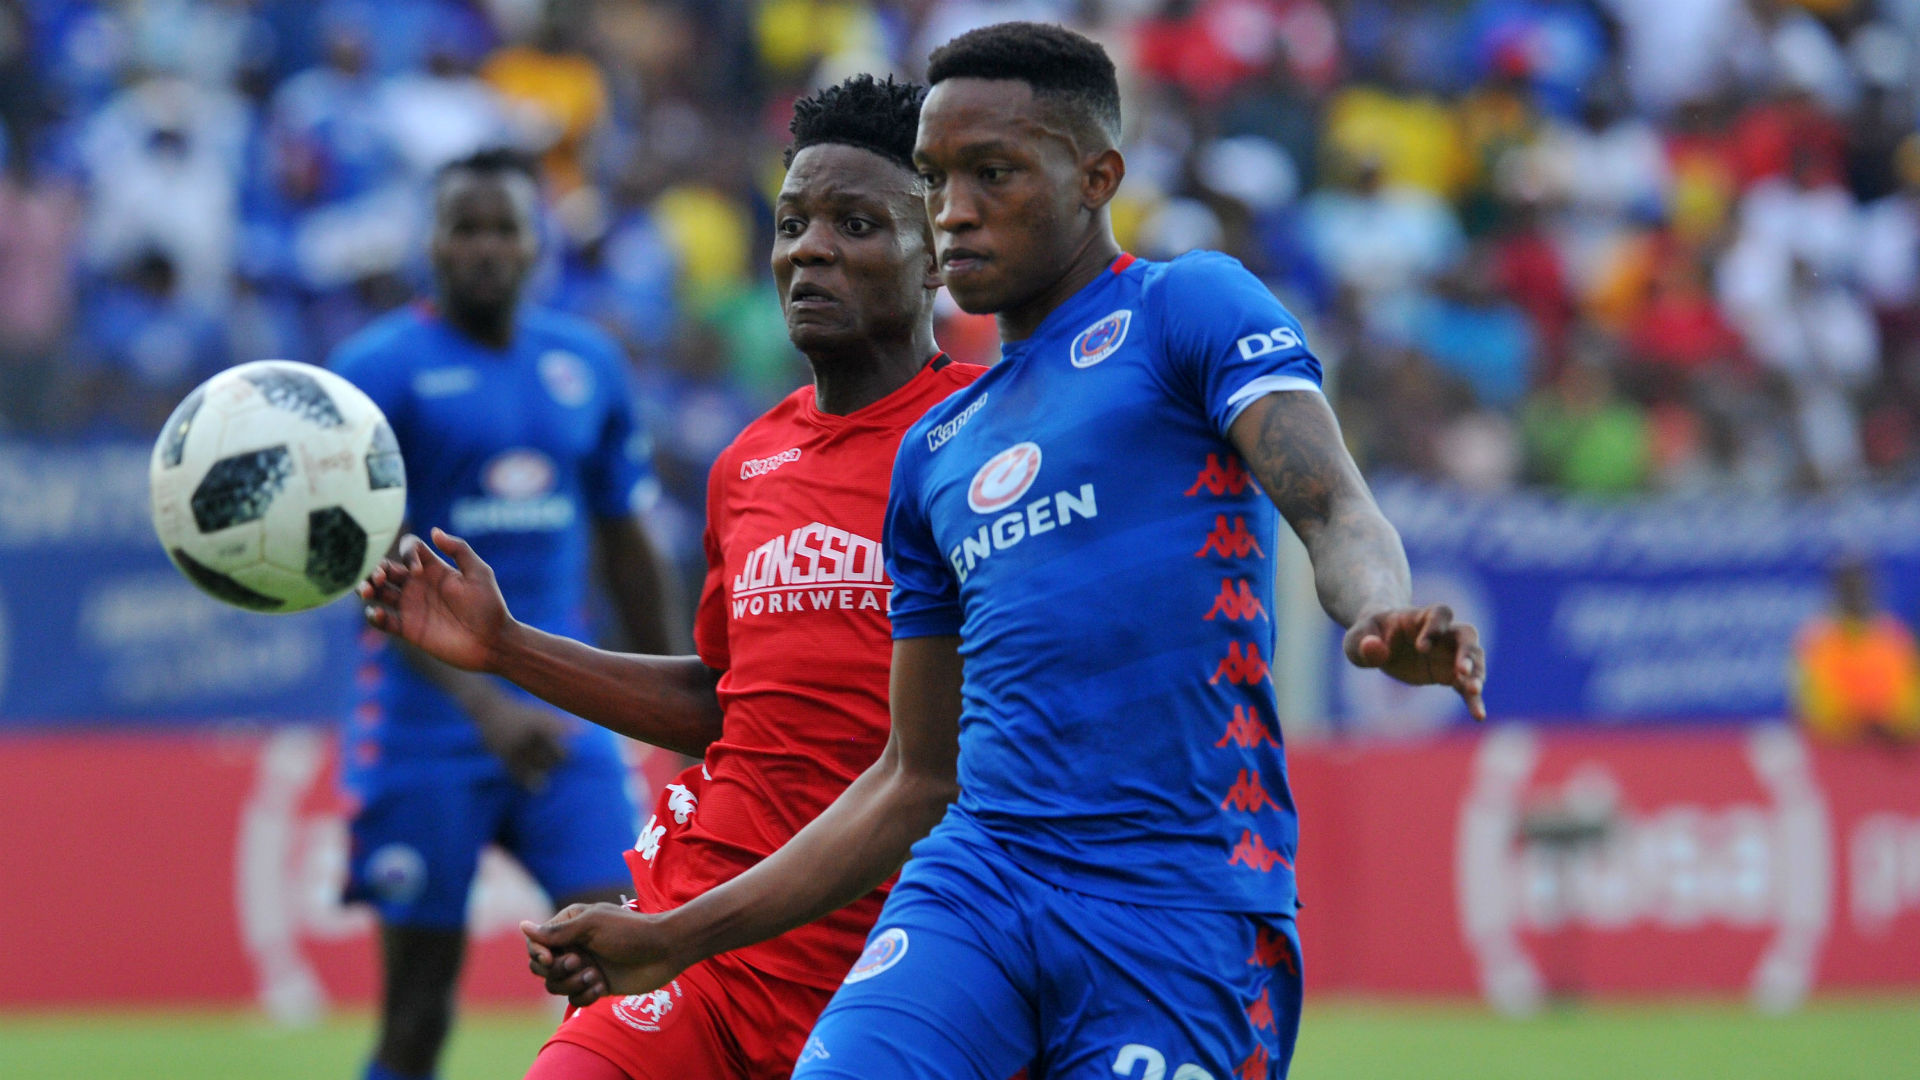 Grant Kekana of Supersport United challenges Sphiwe Mahlangu of Highlands Park, December 2018